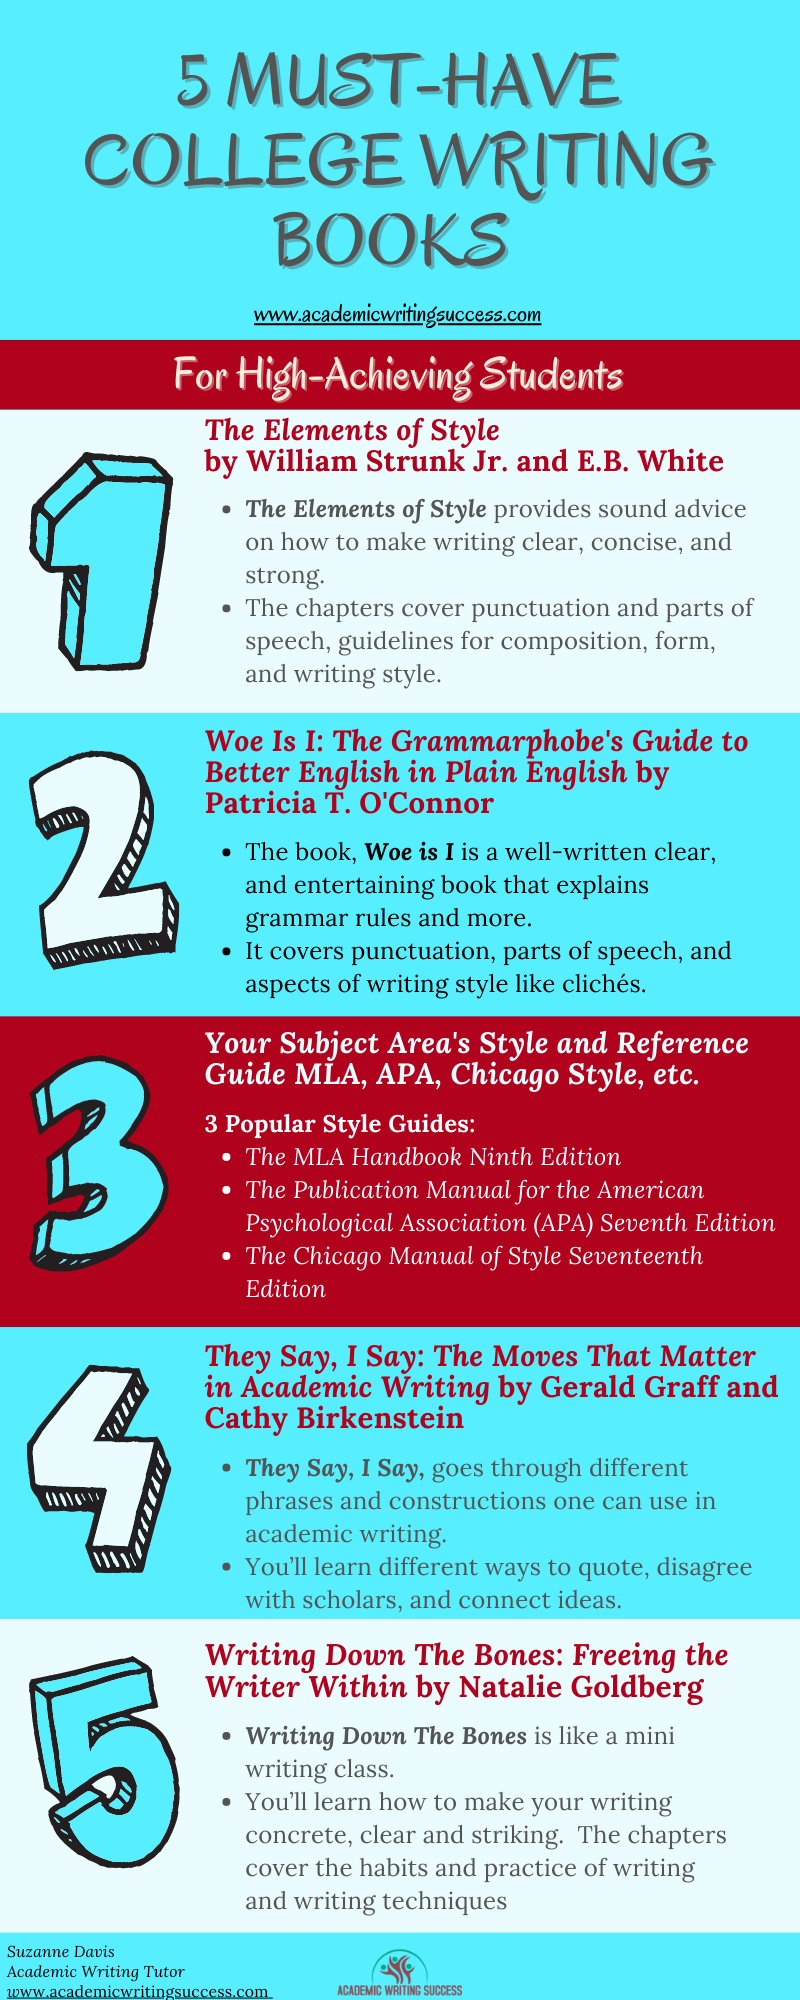 5 Must-Have College Writing Books for High-Achieving Students